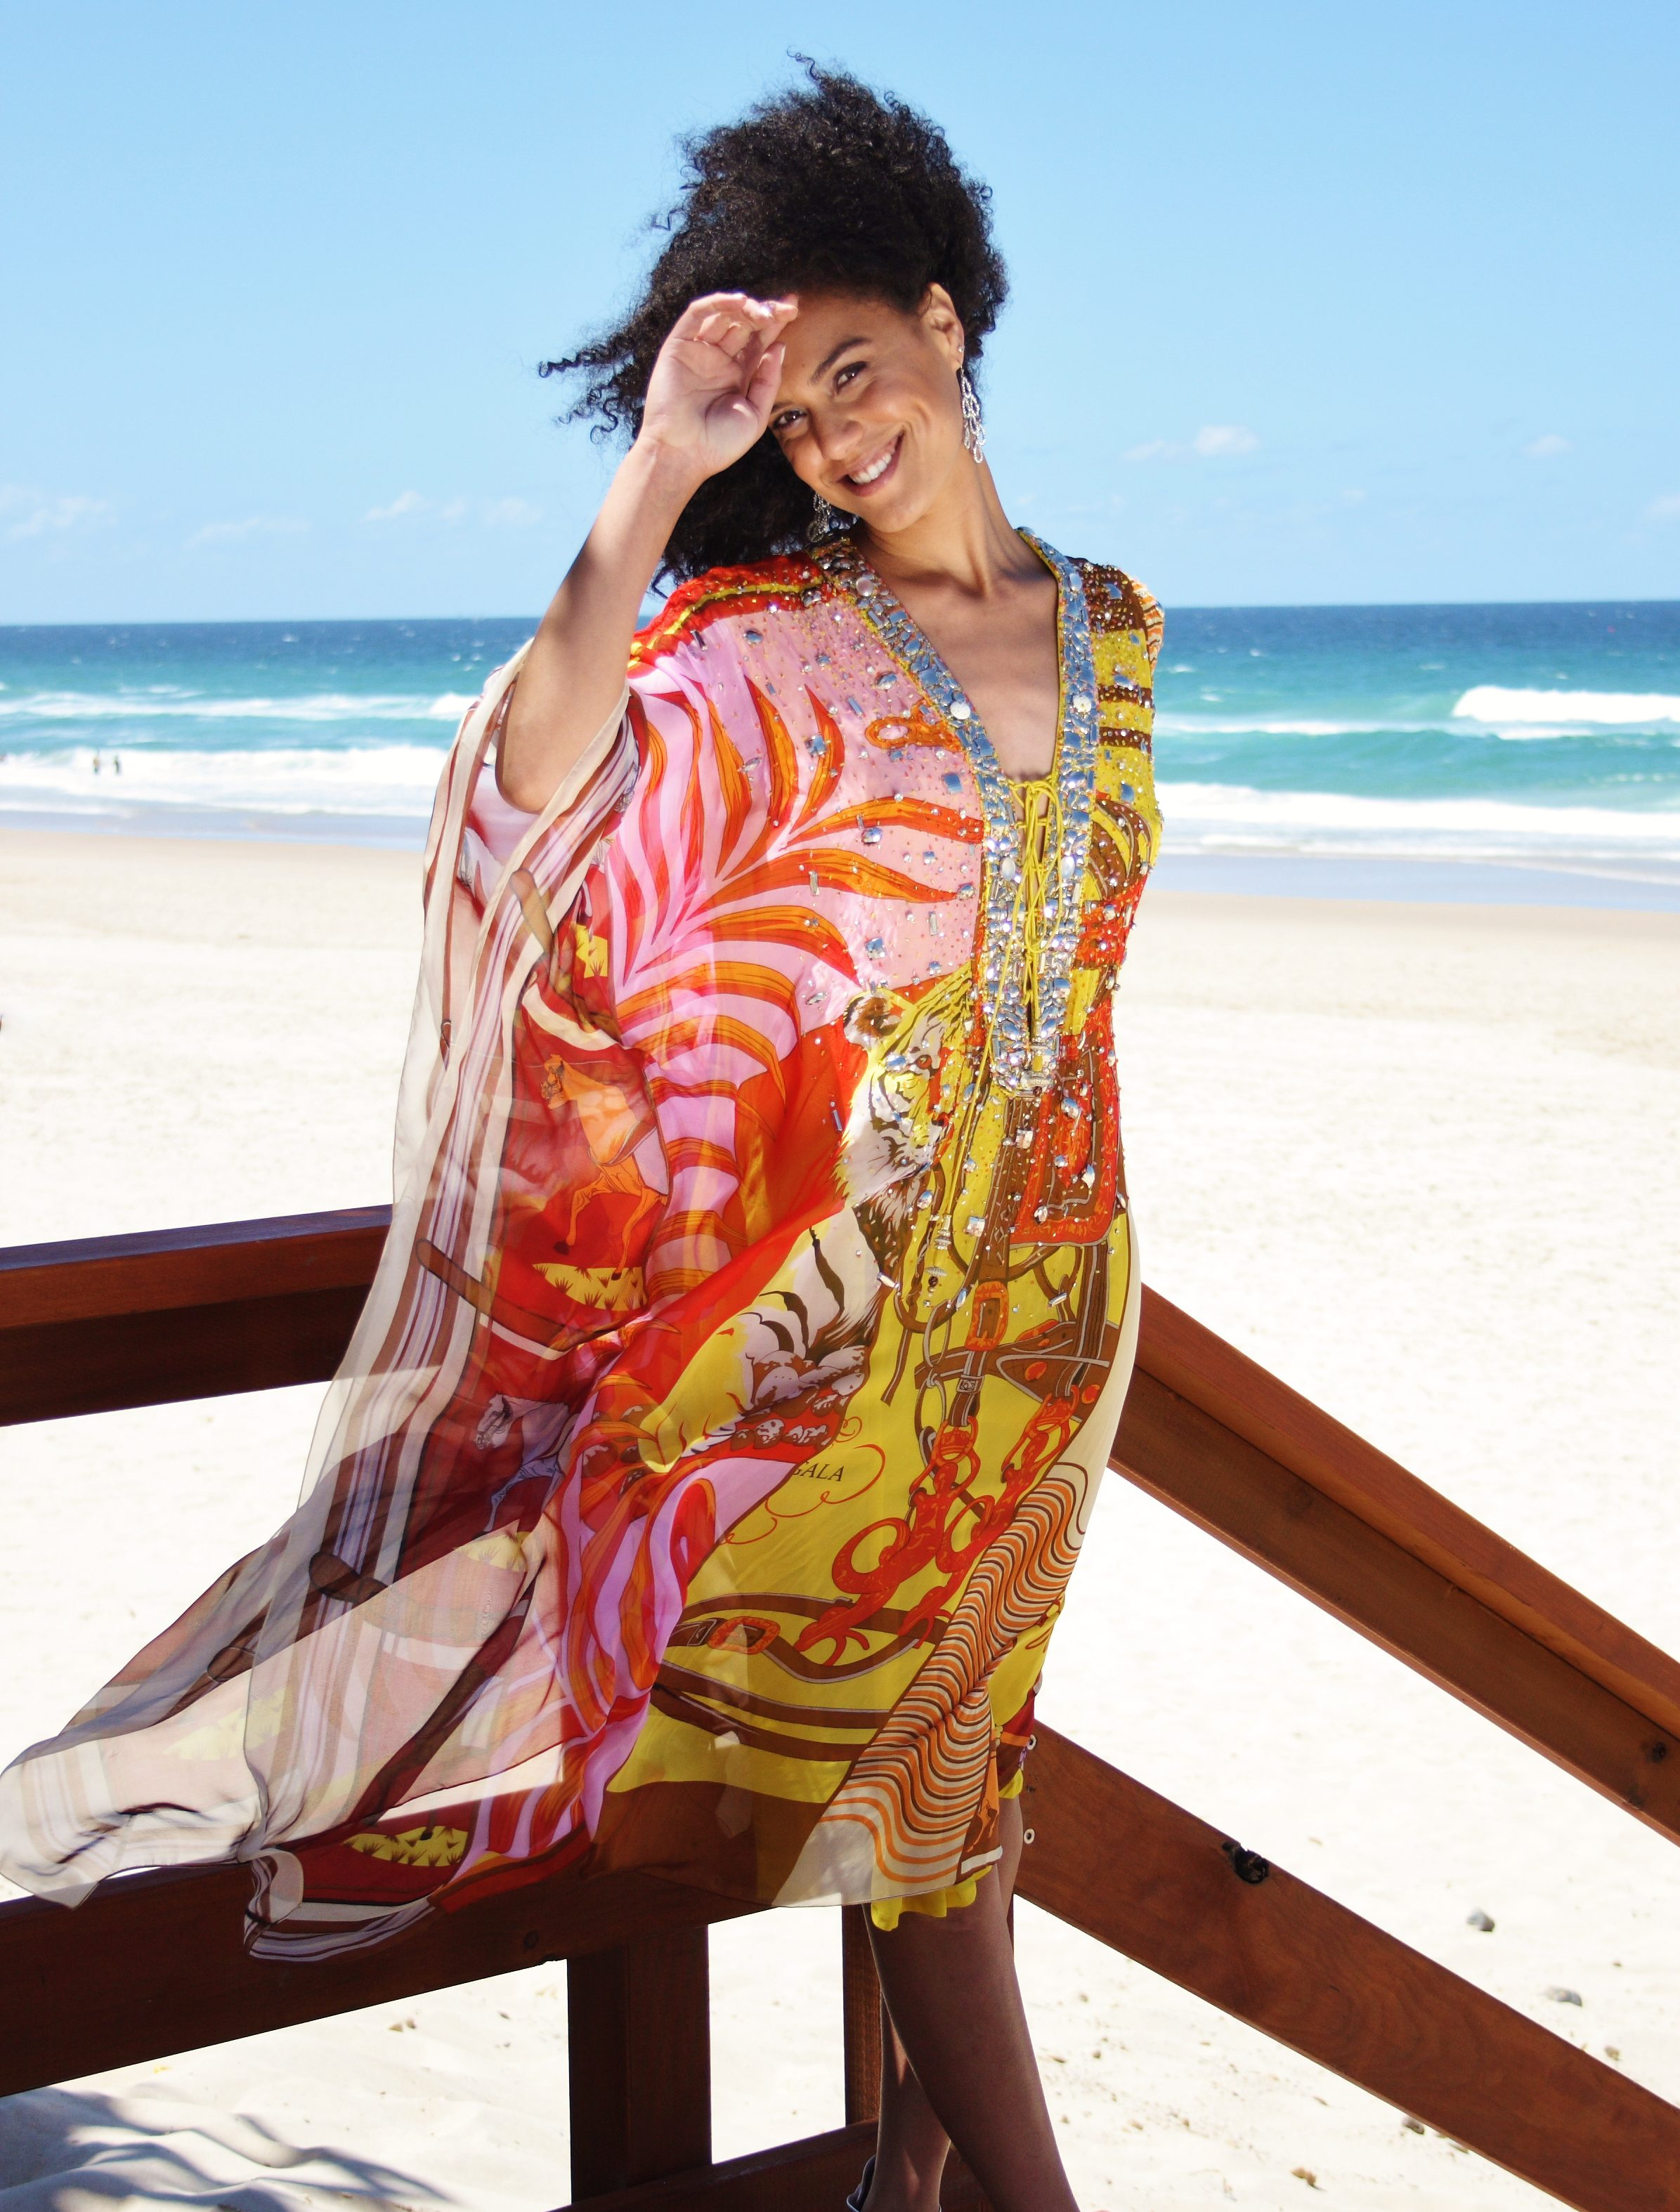 d927bf2a9ed92 Sunset Surprise Silk Kaftan - My Darling Jeannie